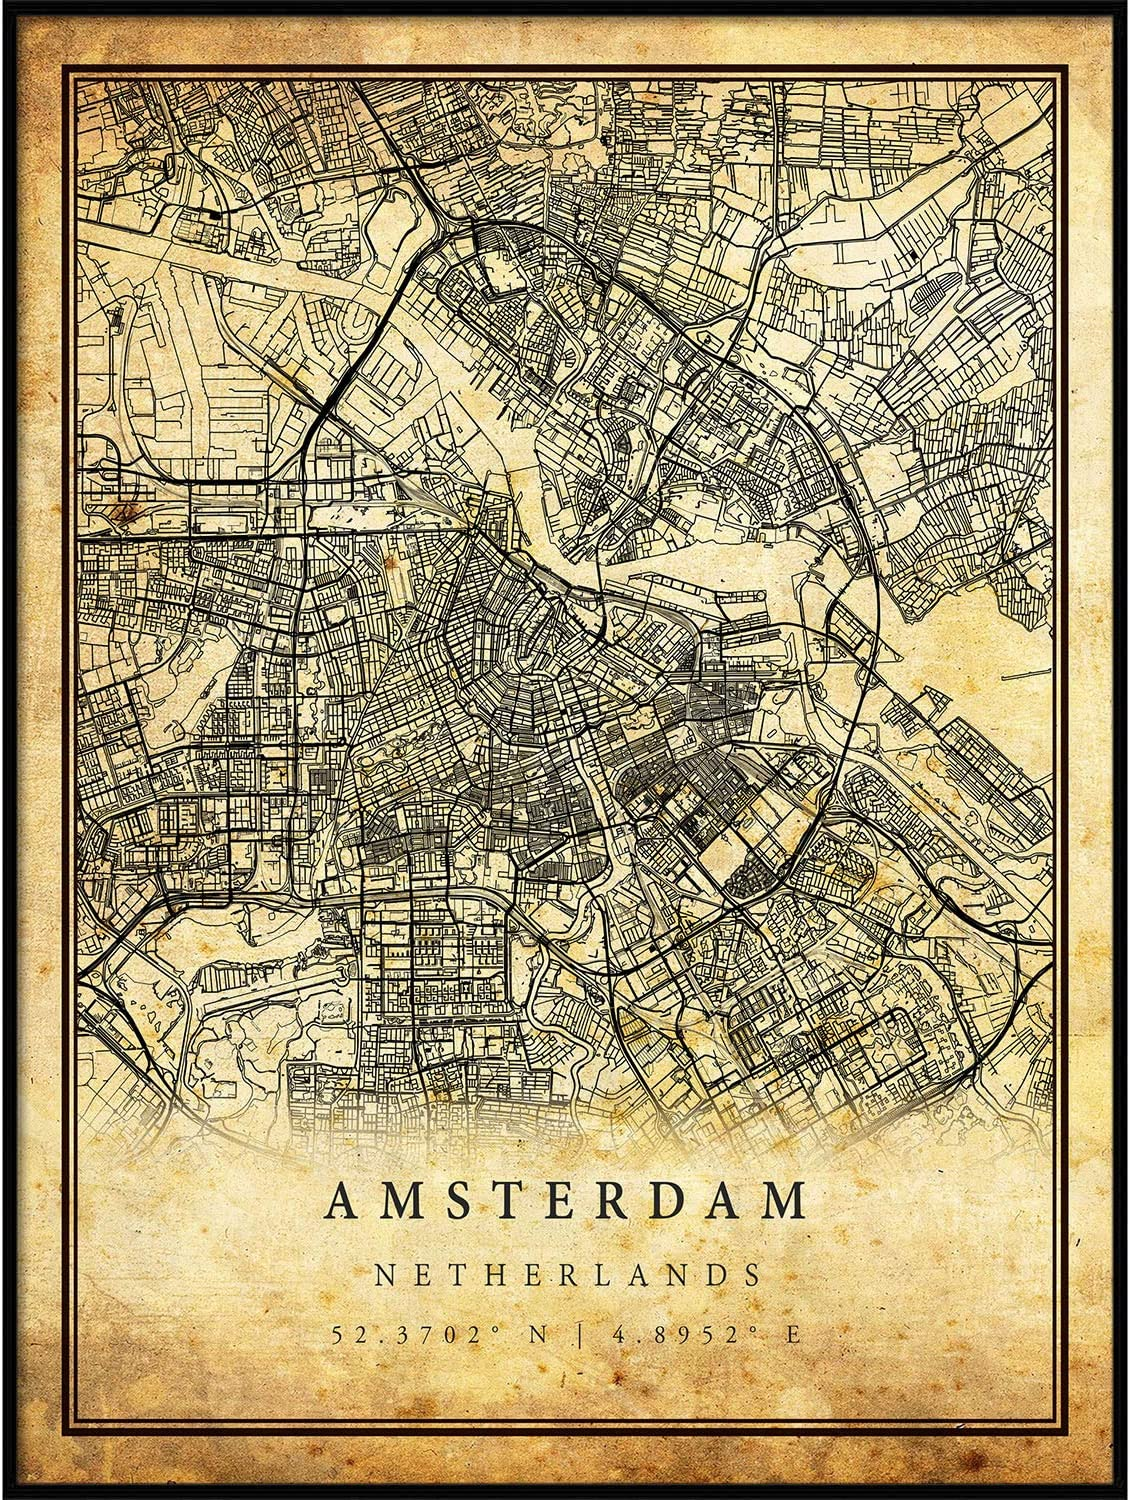 Amsterdam map Vintage Style Poster Print   Old City Artwork Prints   Antique Style Home Decor   Netherlands Wall Art Gift   map Wall Decor 11x14